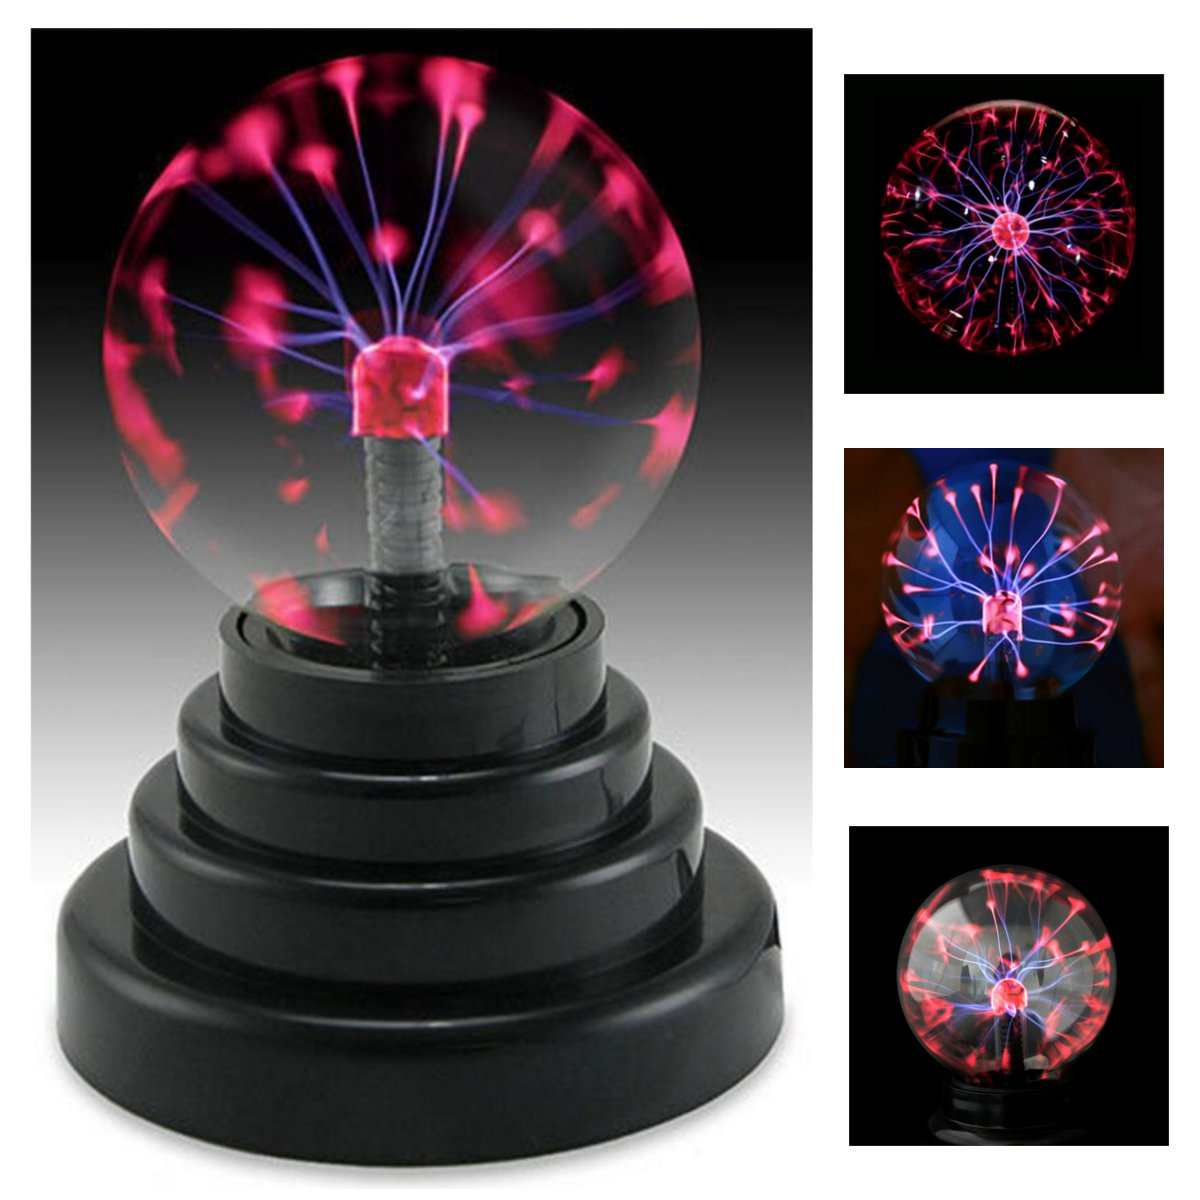 Moaere 3'' Plasma Ball Lamp Large Electric Globe Static Light Sensitive Lightning Glass Sphere with Touch Sound and Mini Tesla Energy Coil is Best Science Toy Nightlight for Kids